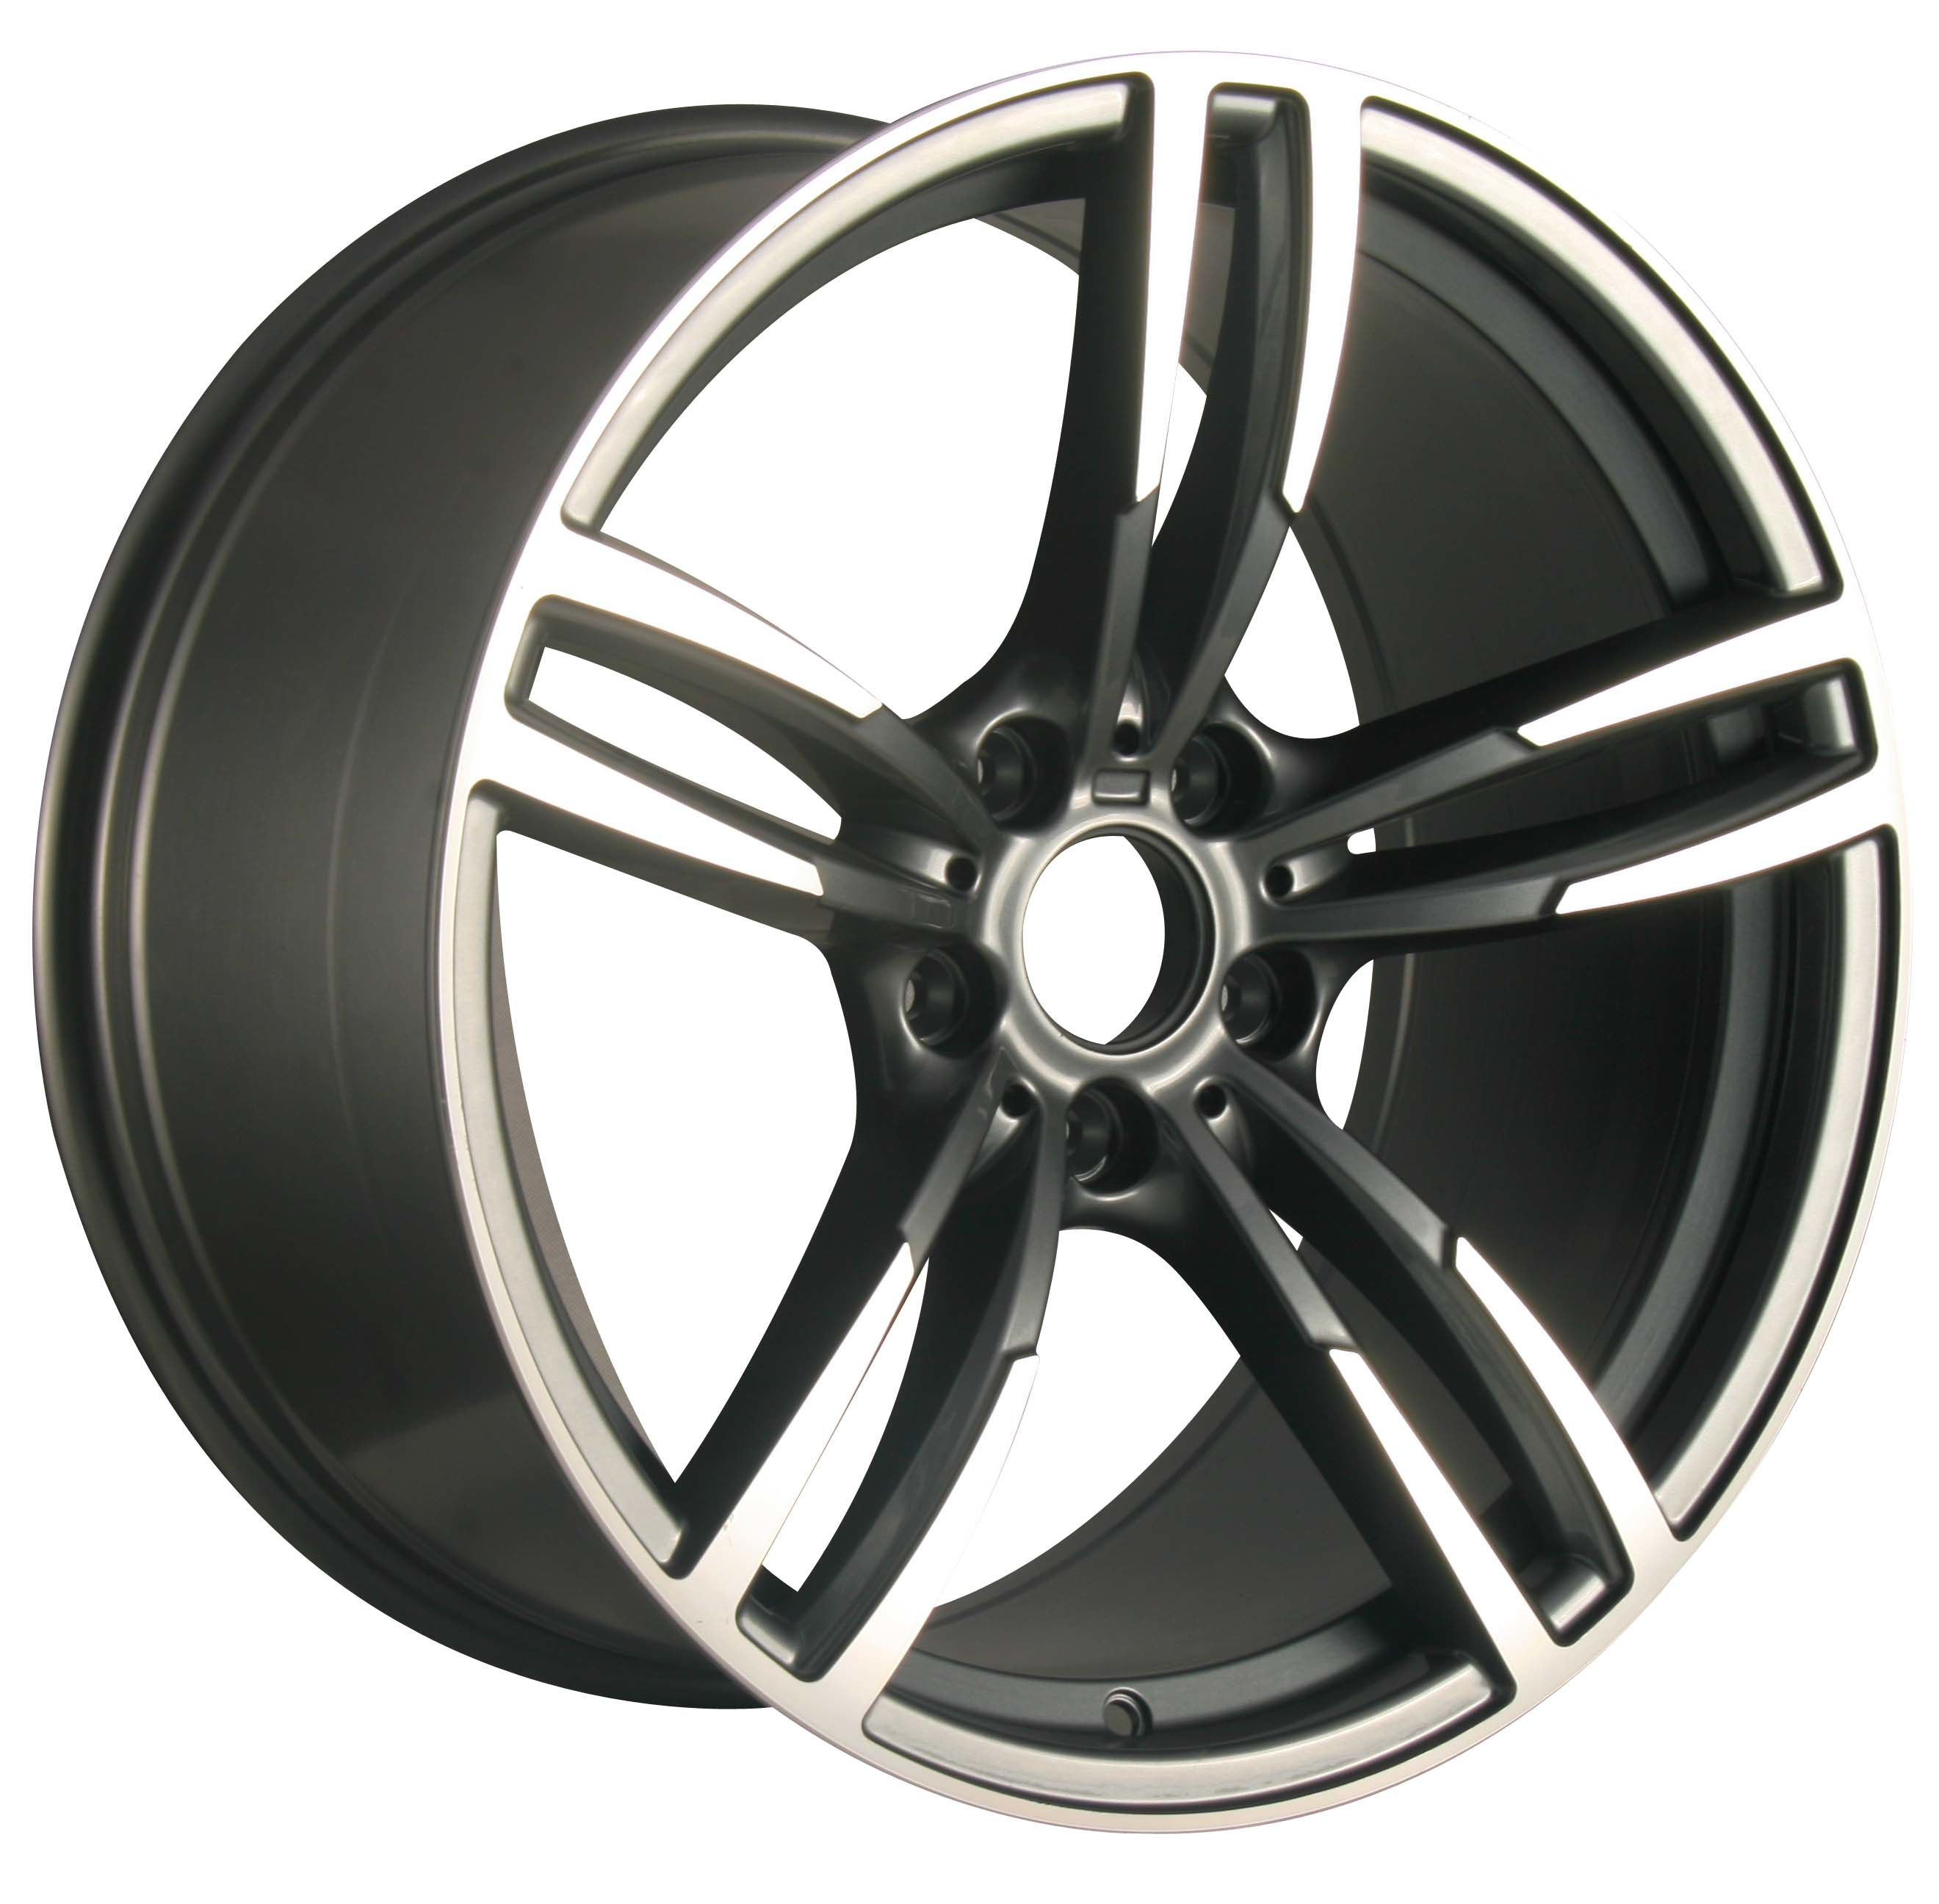 18inch Front/Rear Alloy Wheel Replica Wheel for Bmw′s